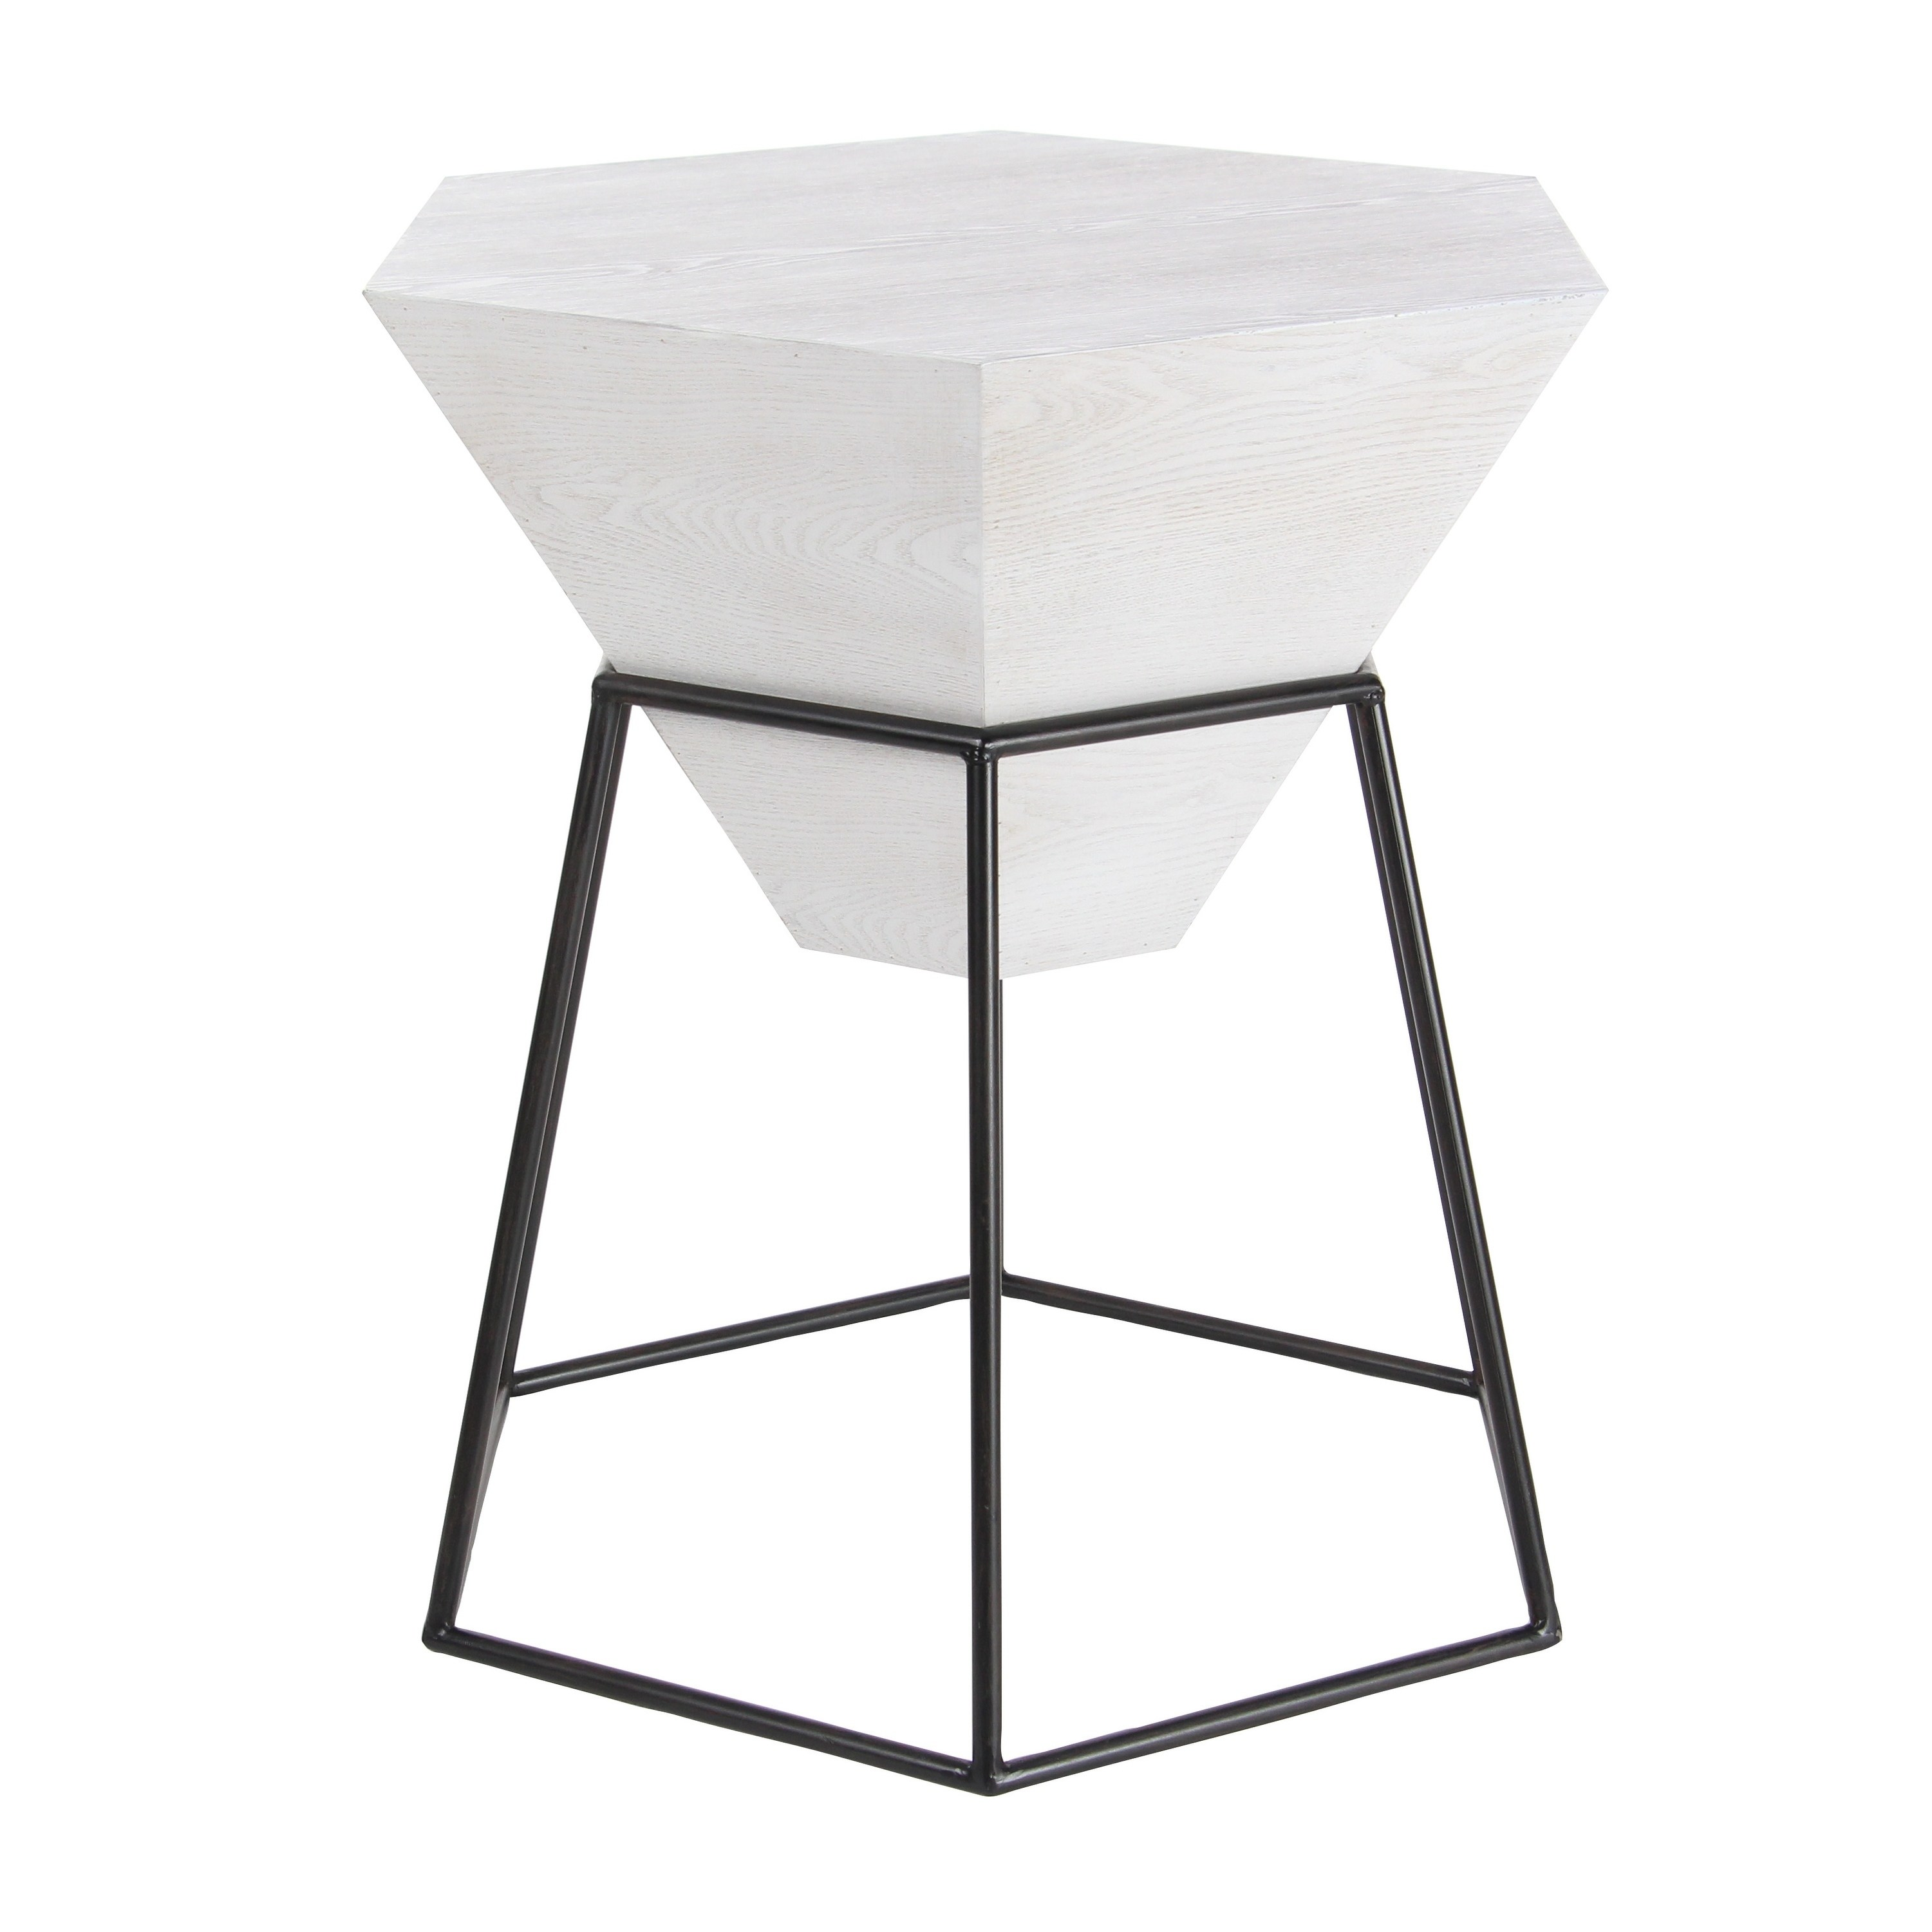 modern inch hexagon white block wooden accent table studio free shipping today sofa with baskets butterfly leaf cute black folding side outdoor light bulbs rod iron garden box